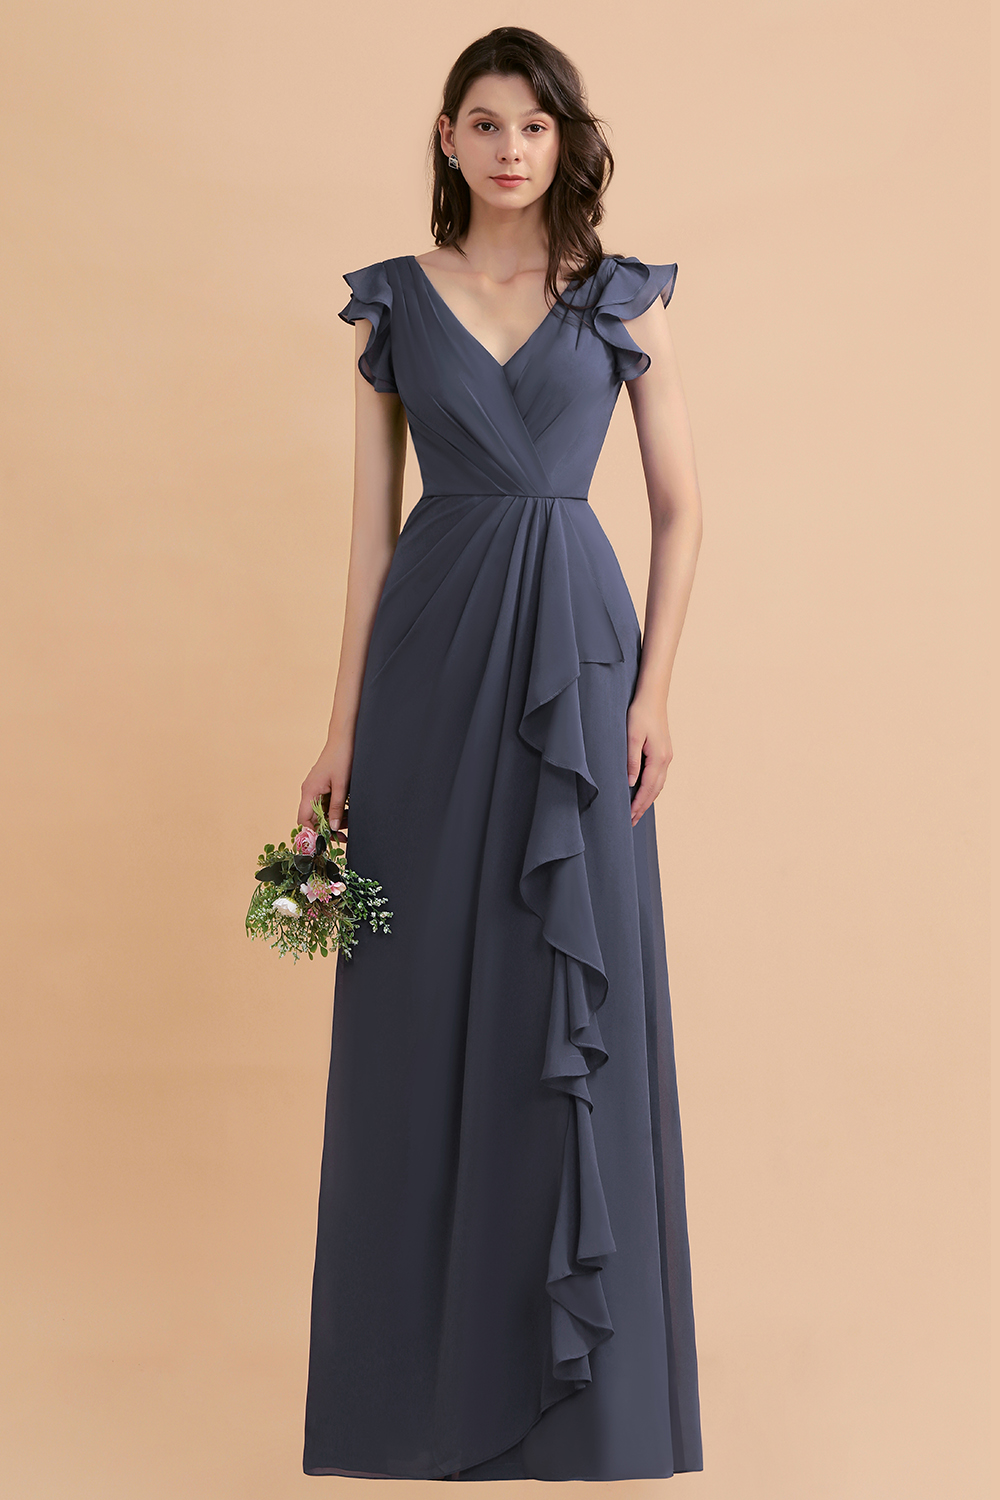 BMbridal Affordable V-Neck Chiffon Ruffles Bridesmaid Dress with Pockets On Sale